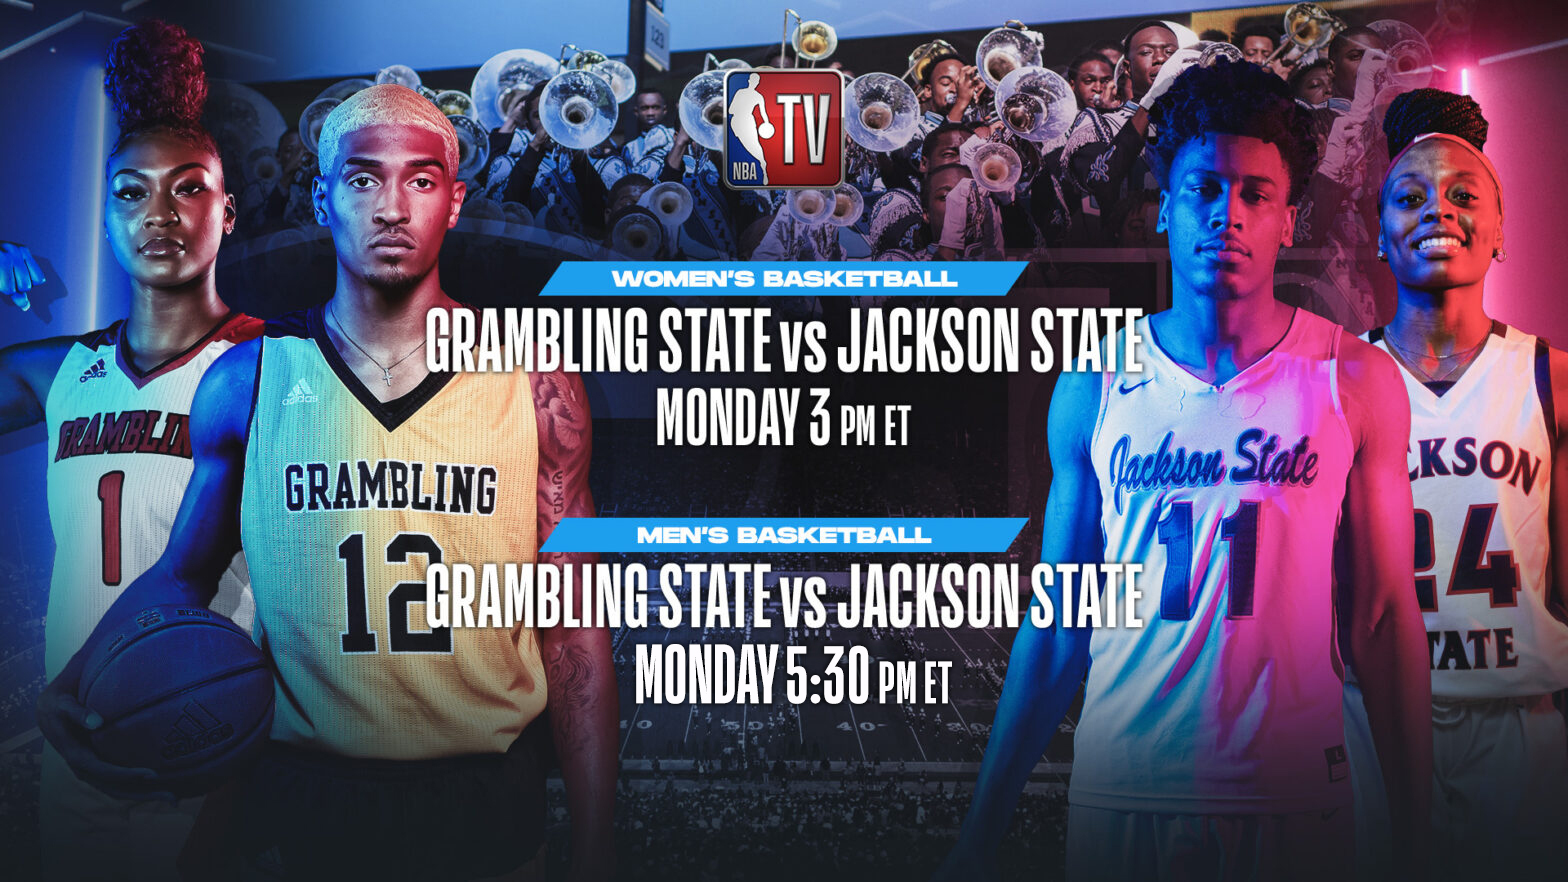 NBA TV to televise HBCUs Grambling State vs. Jackson State men's and women's basketball games